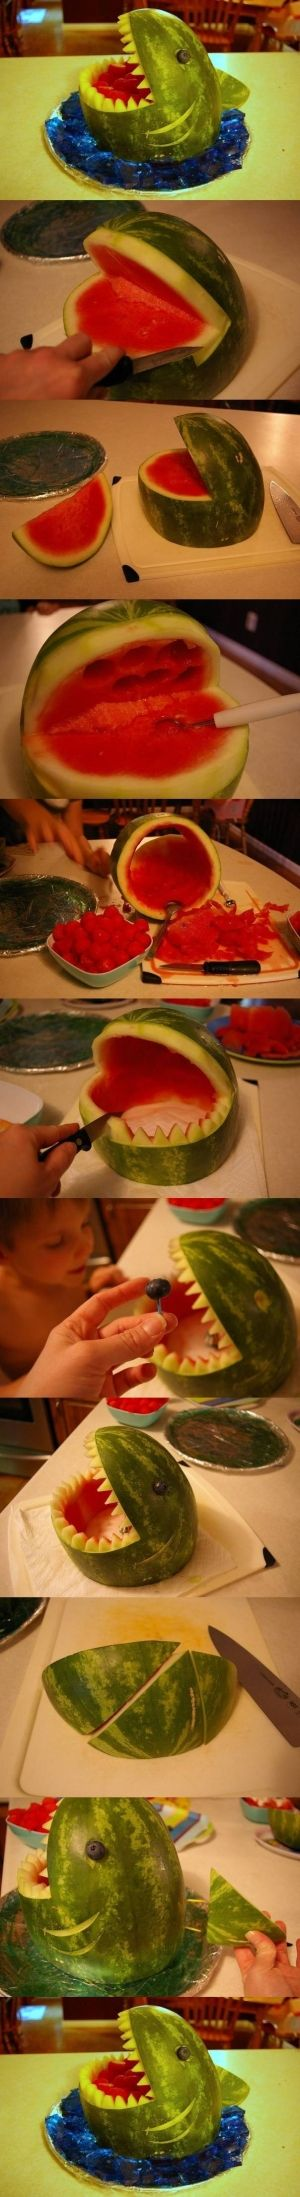 f8f4a7fcb78fd97109324e1318db5762--watermelon-shark-carving-shark-watermelon.jpg